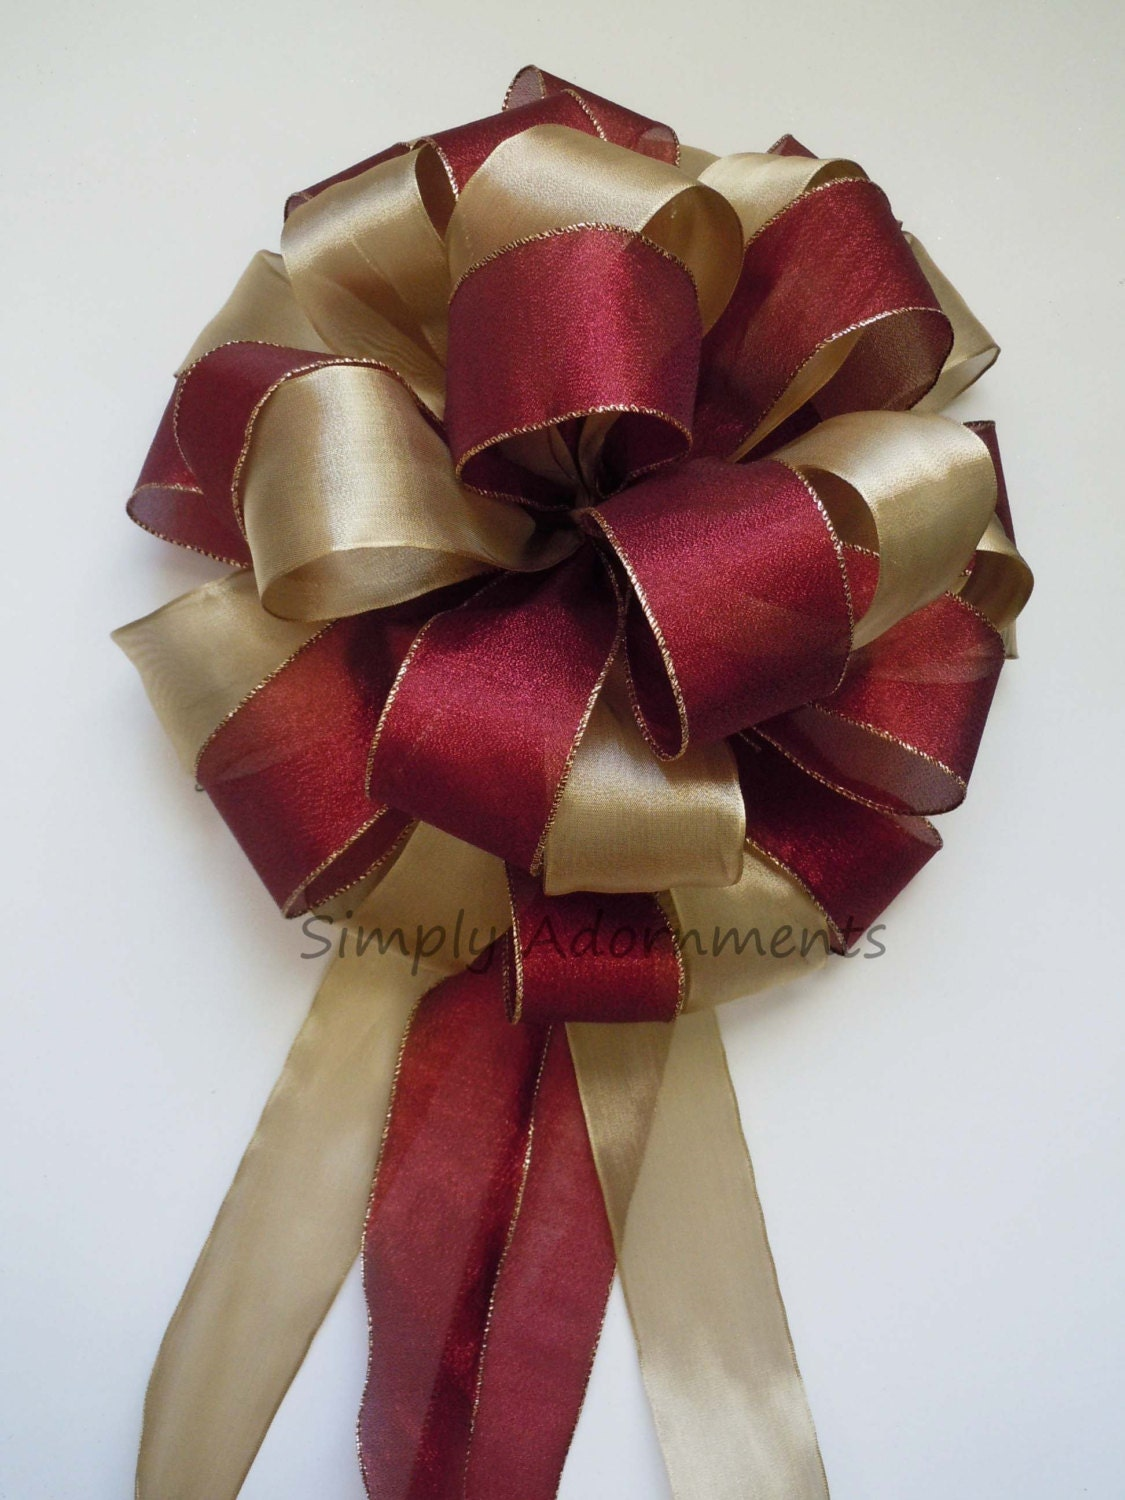 Ribbons For Christmas Tree